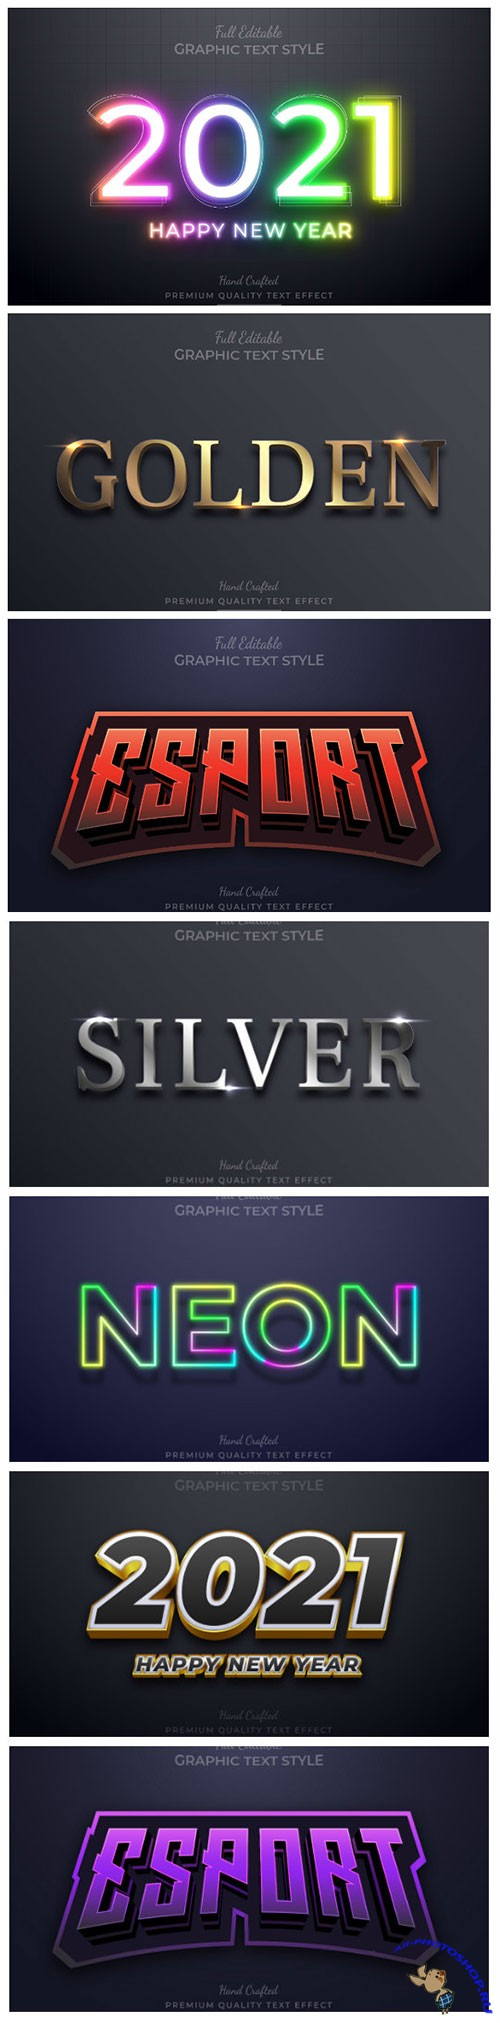 3d editable text style effect vector vol 155